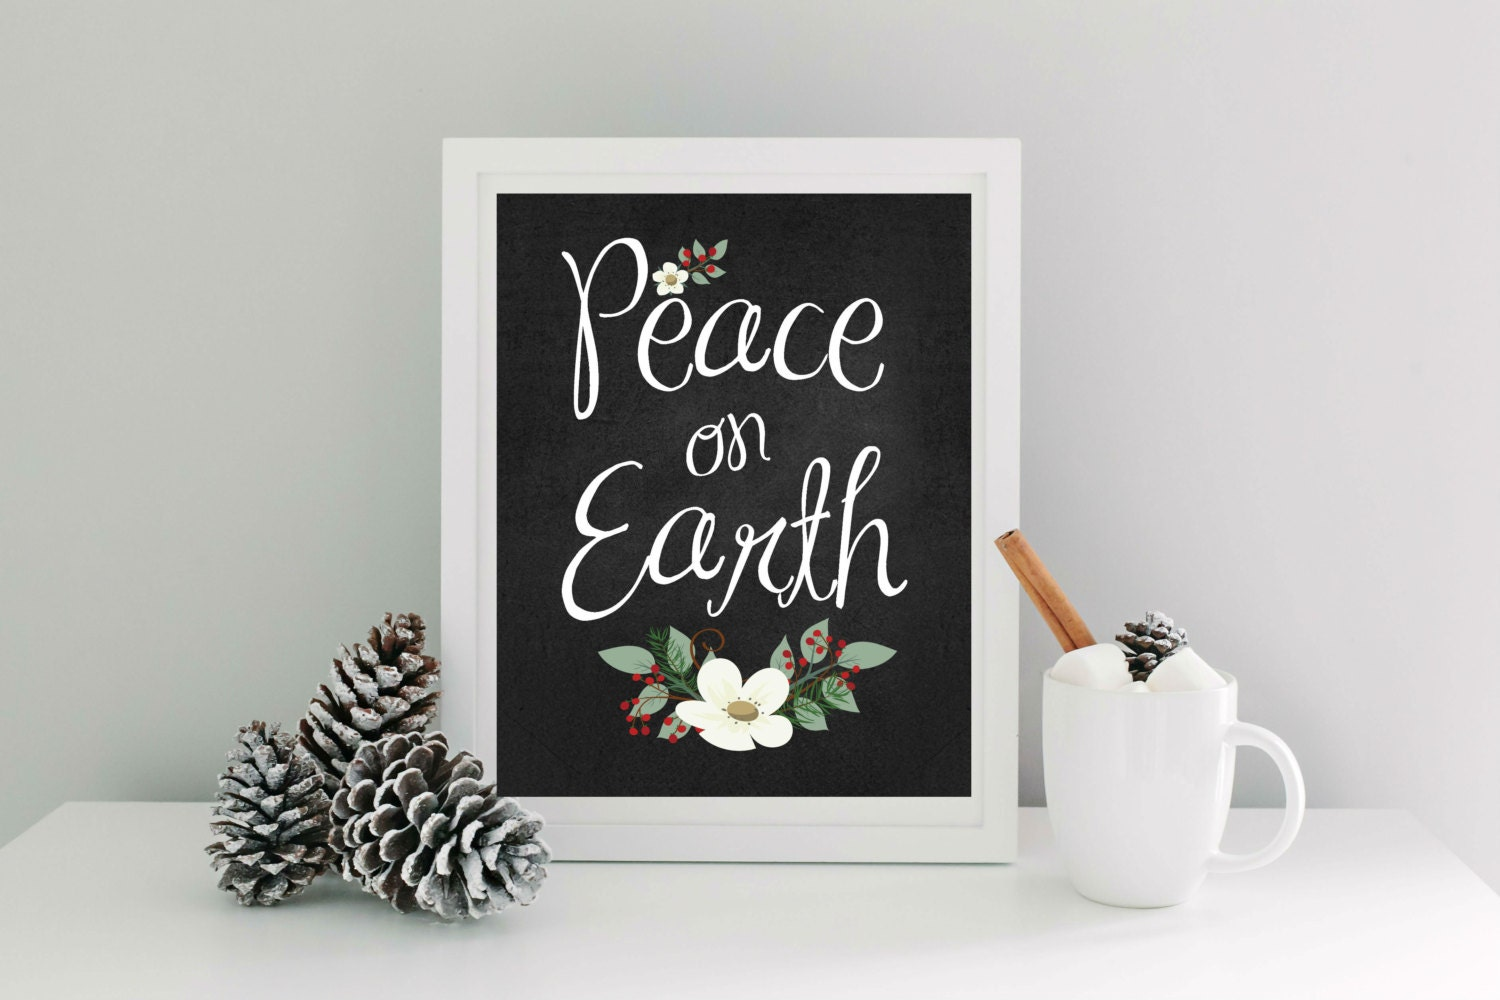 peace on earth instant download 8x10 chalkboard background